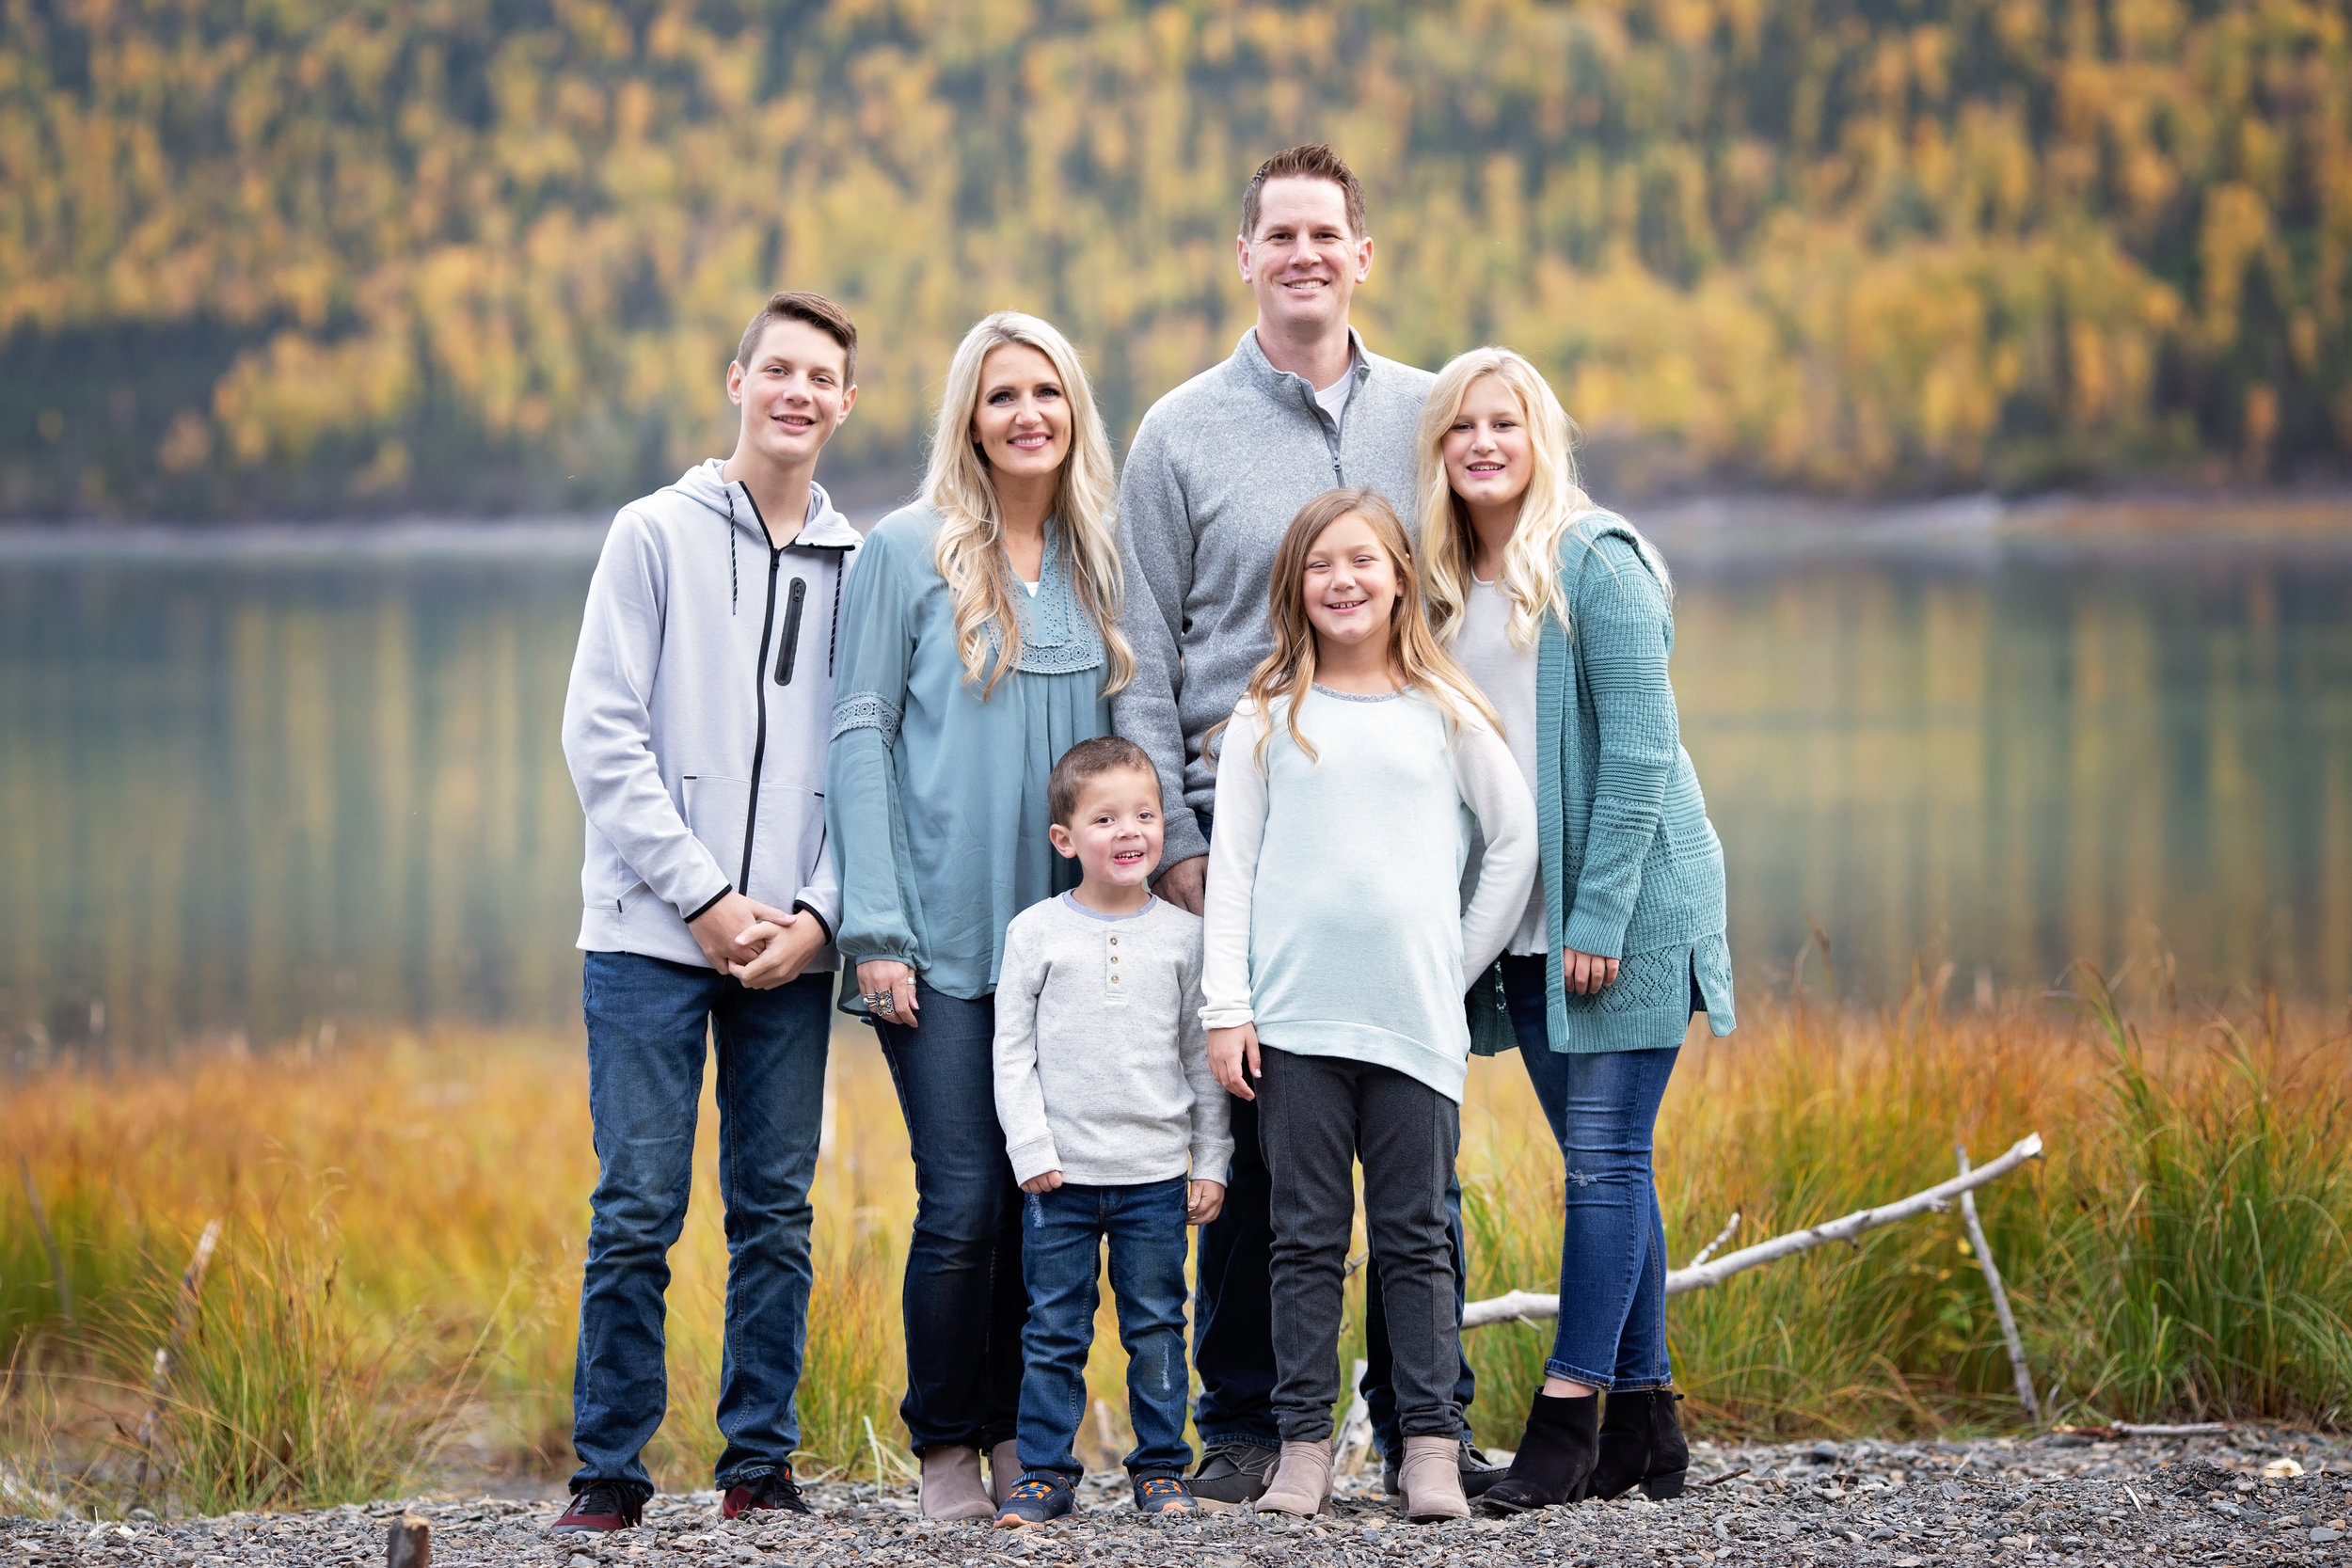 anchorage-family-photographer-5.jpg